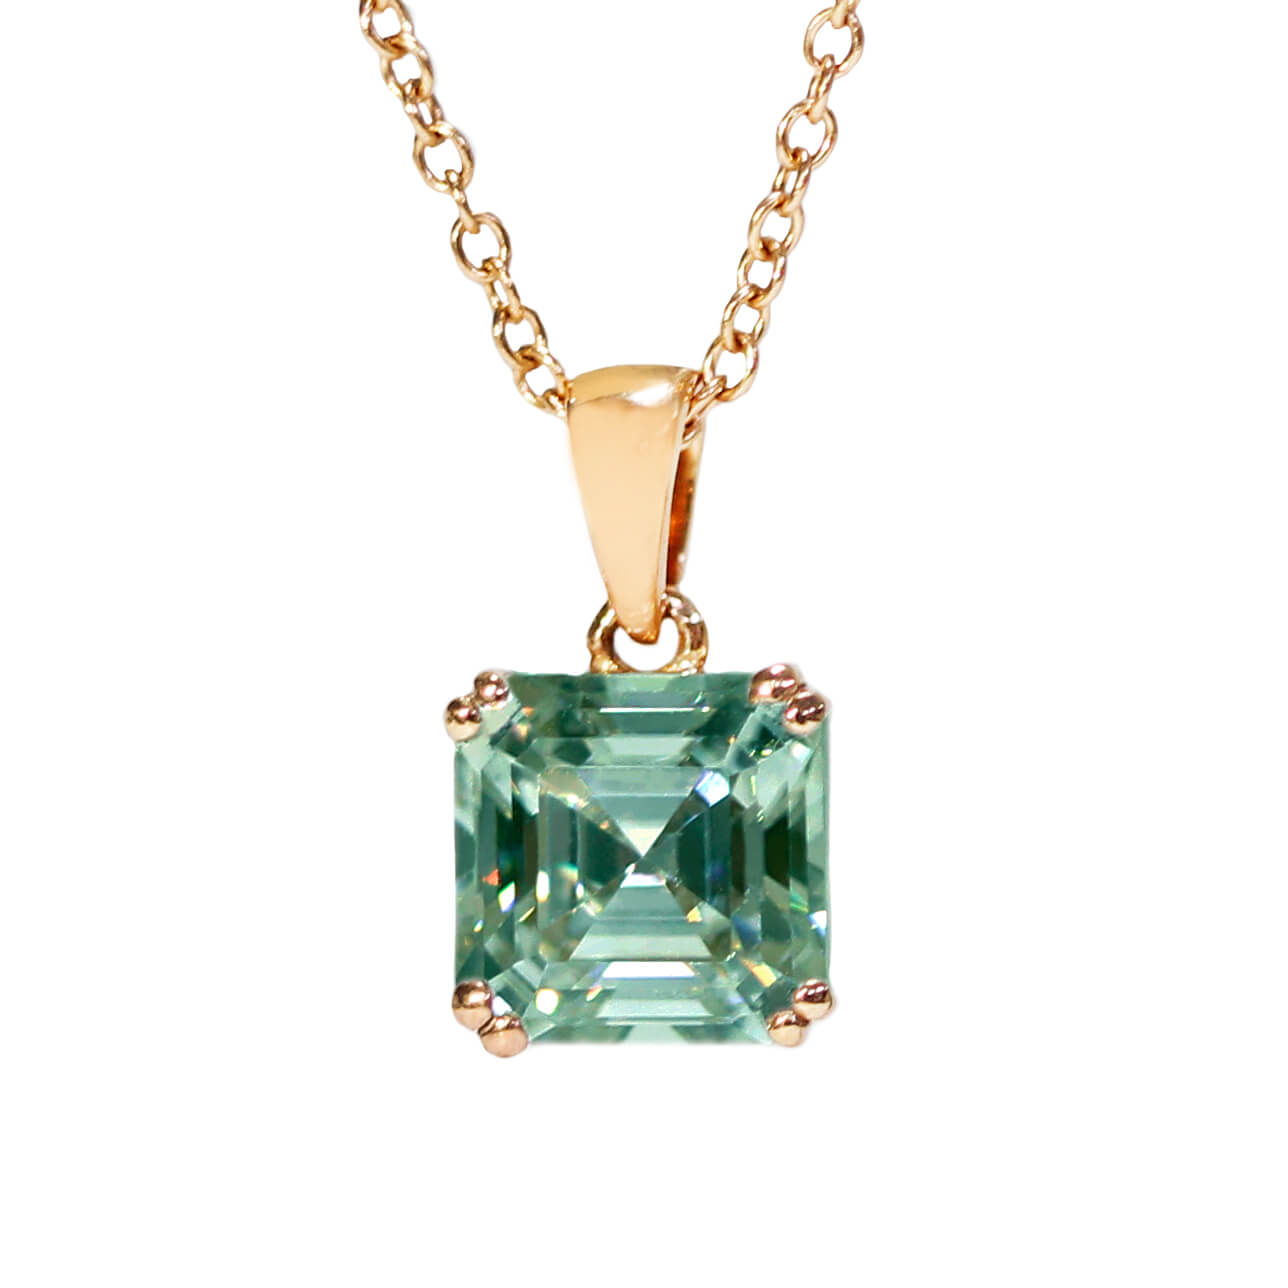 Medium Green Moissanite Asscher Cut 18K Gold Pendant - Lecaine Gems Moissanite